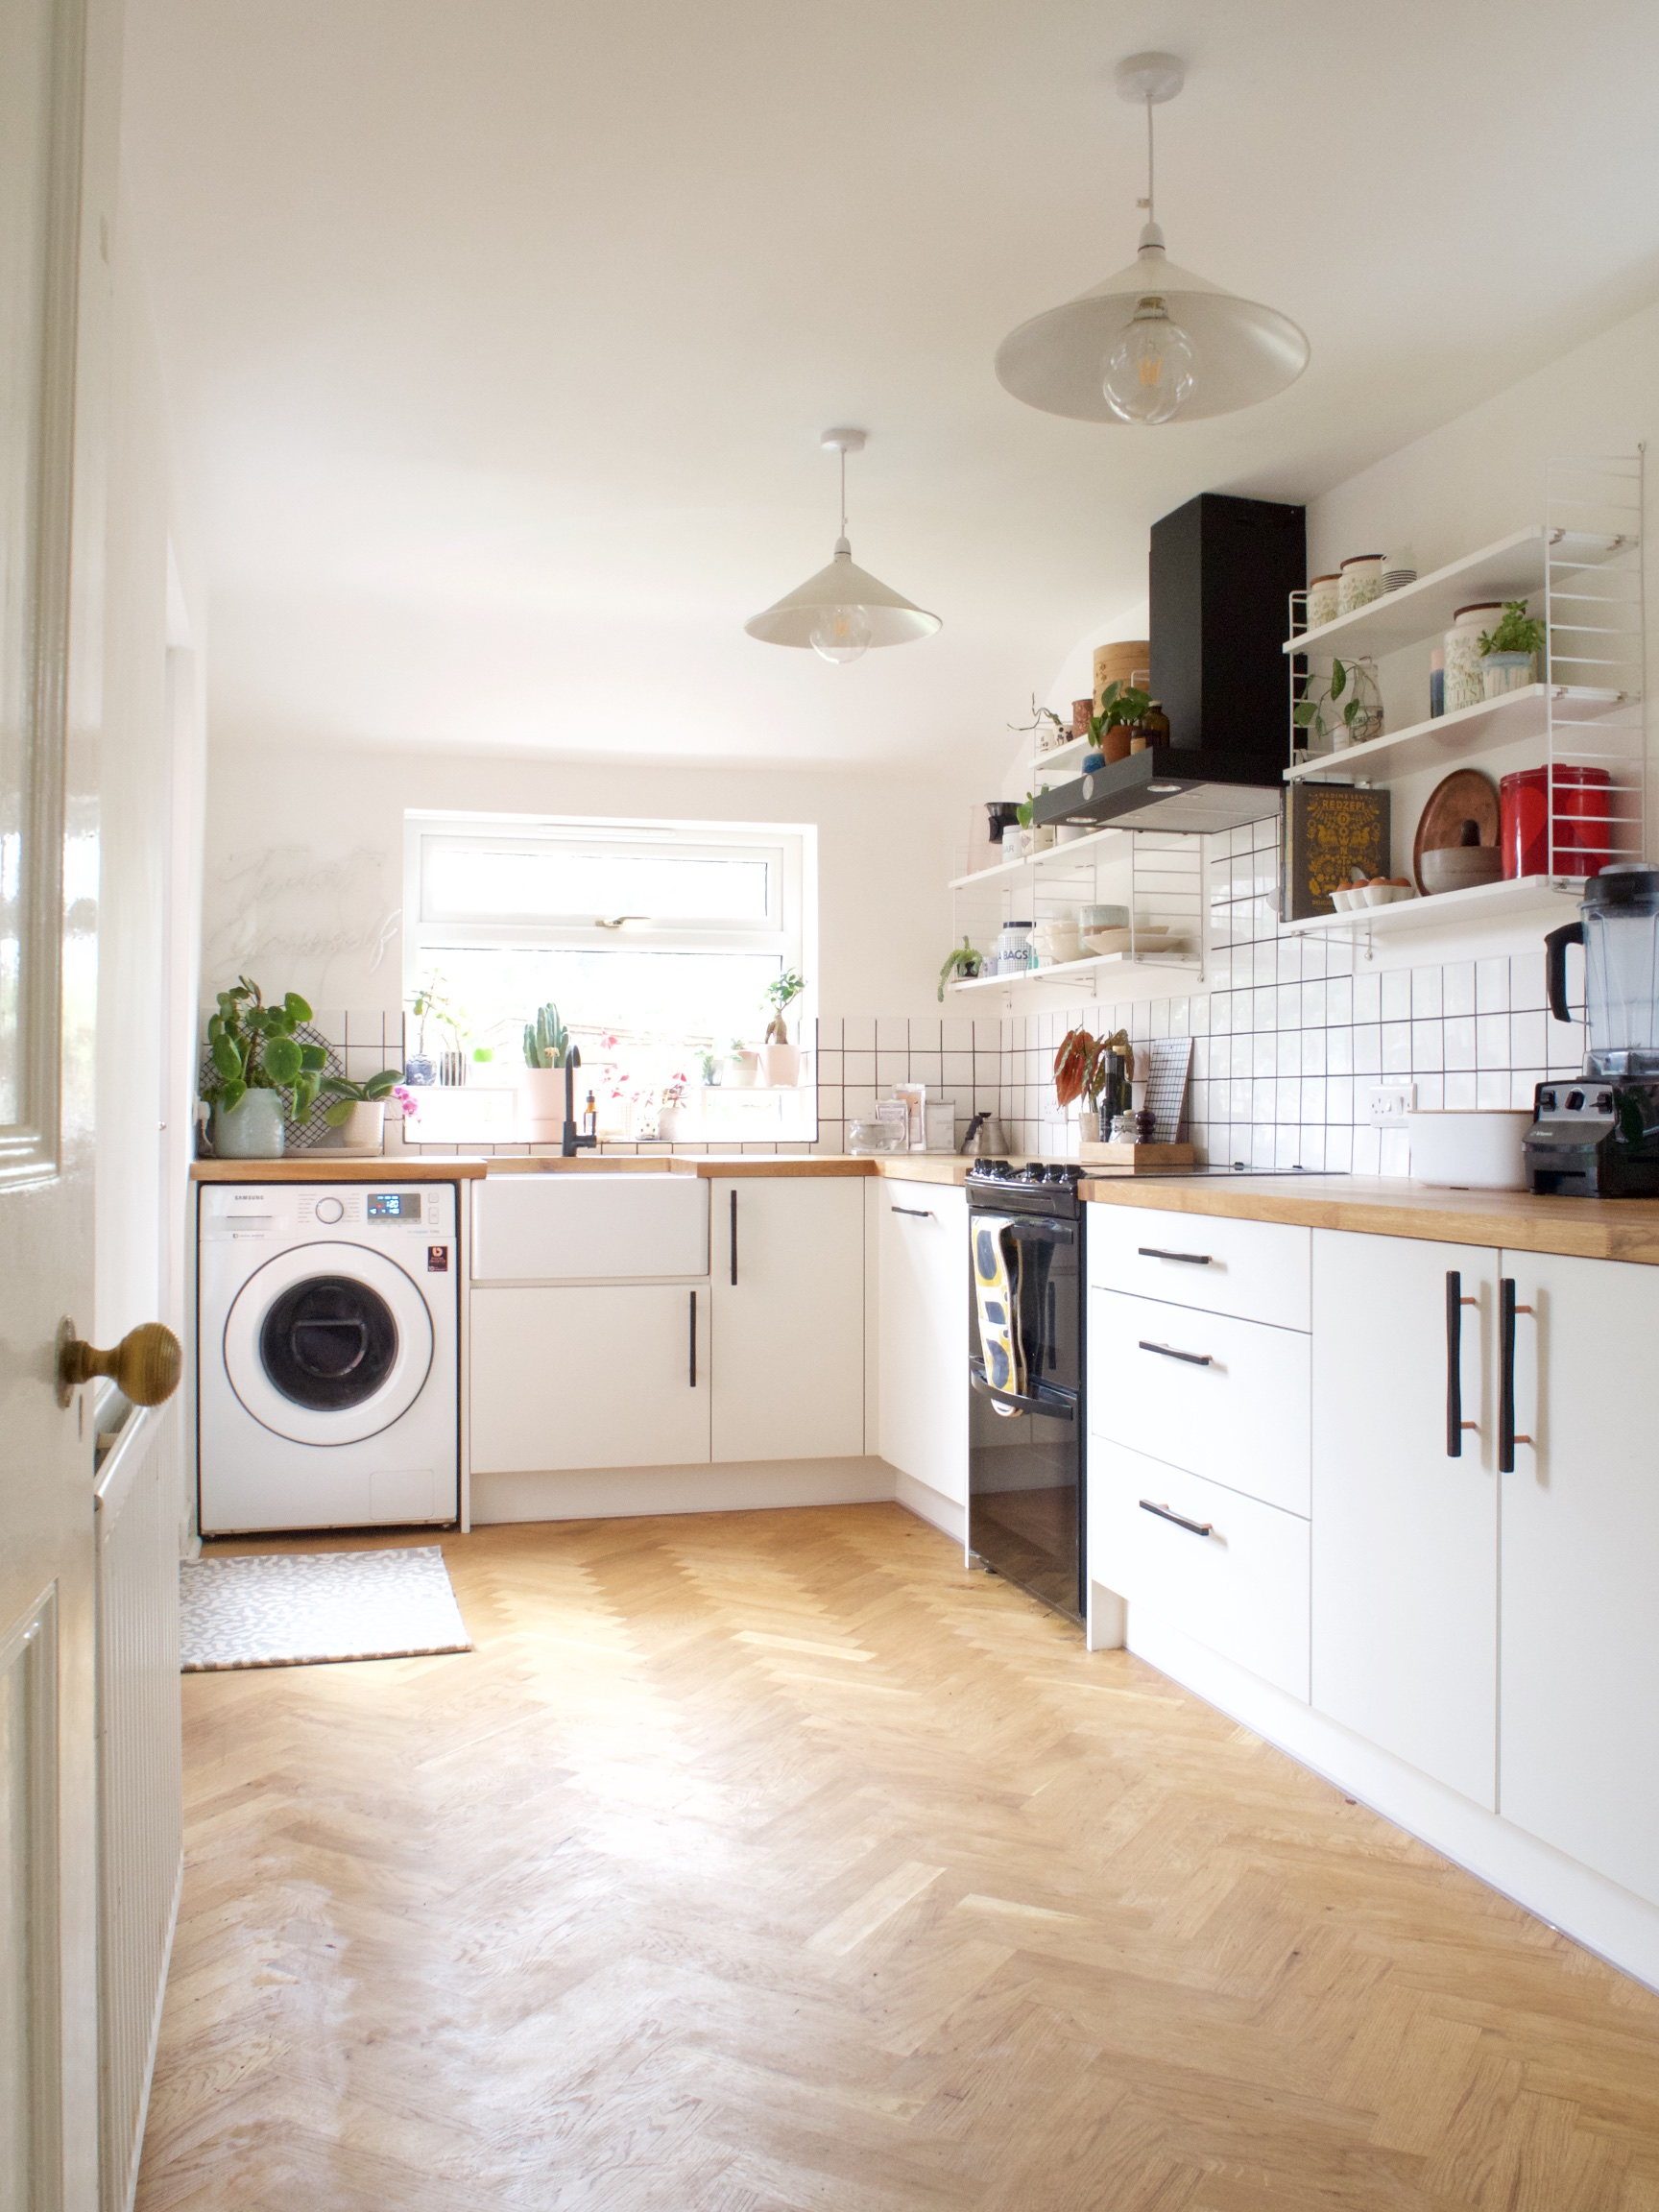 {onr. home} The Big Kitchen Reveal